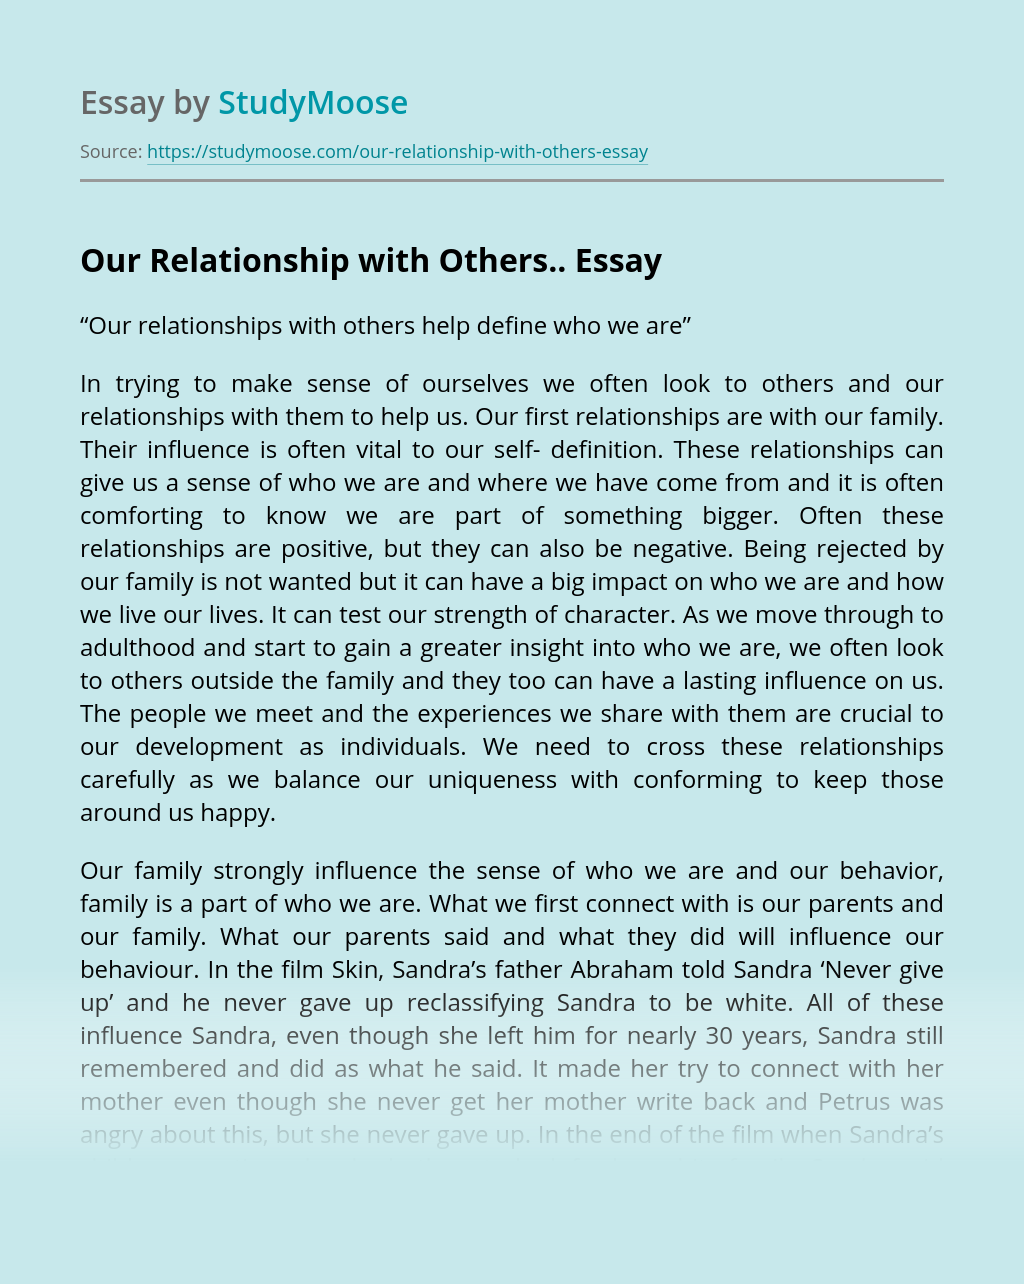 Our Relationship with Others..